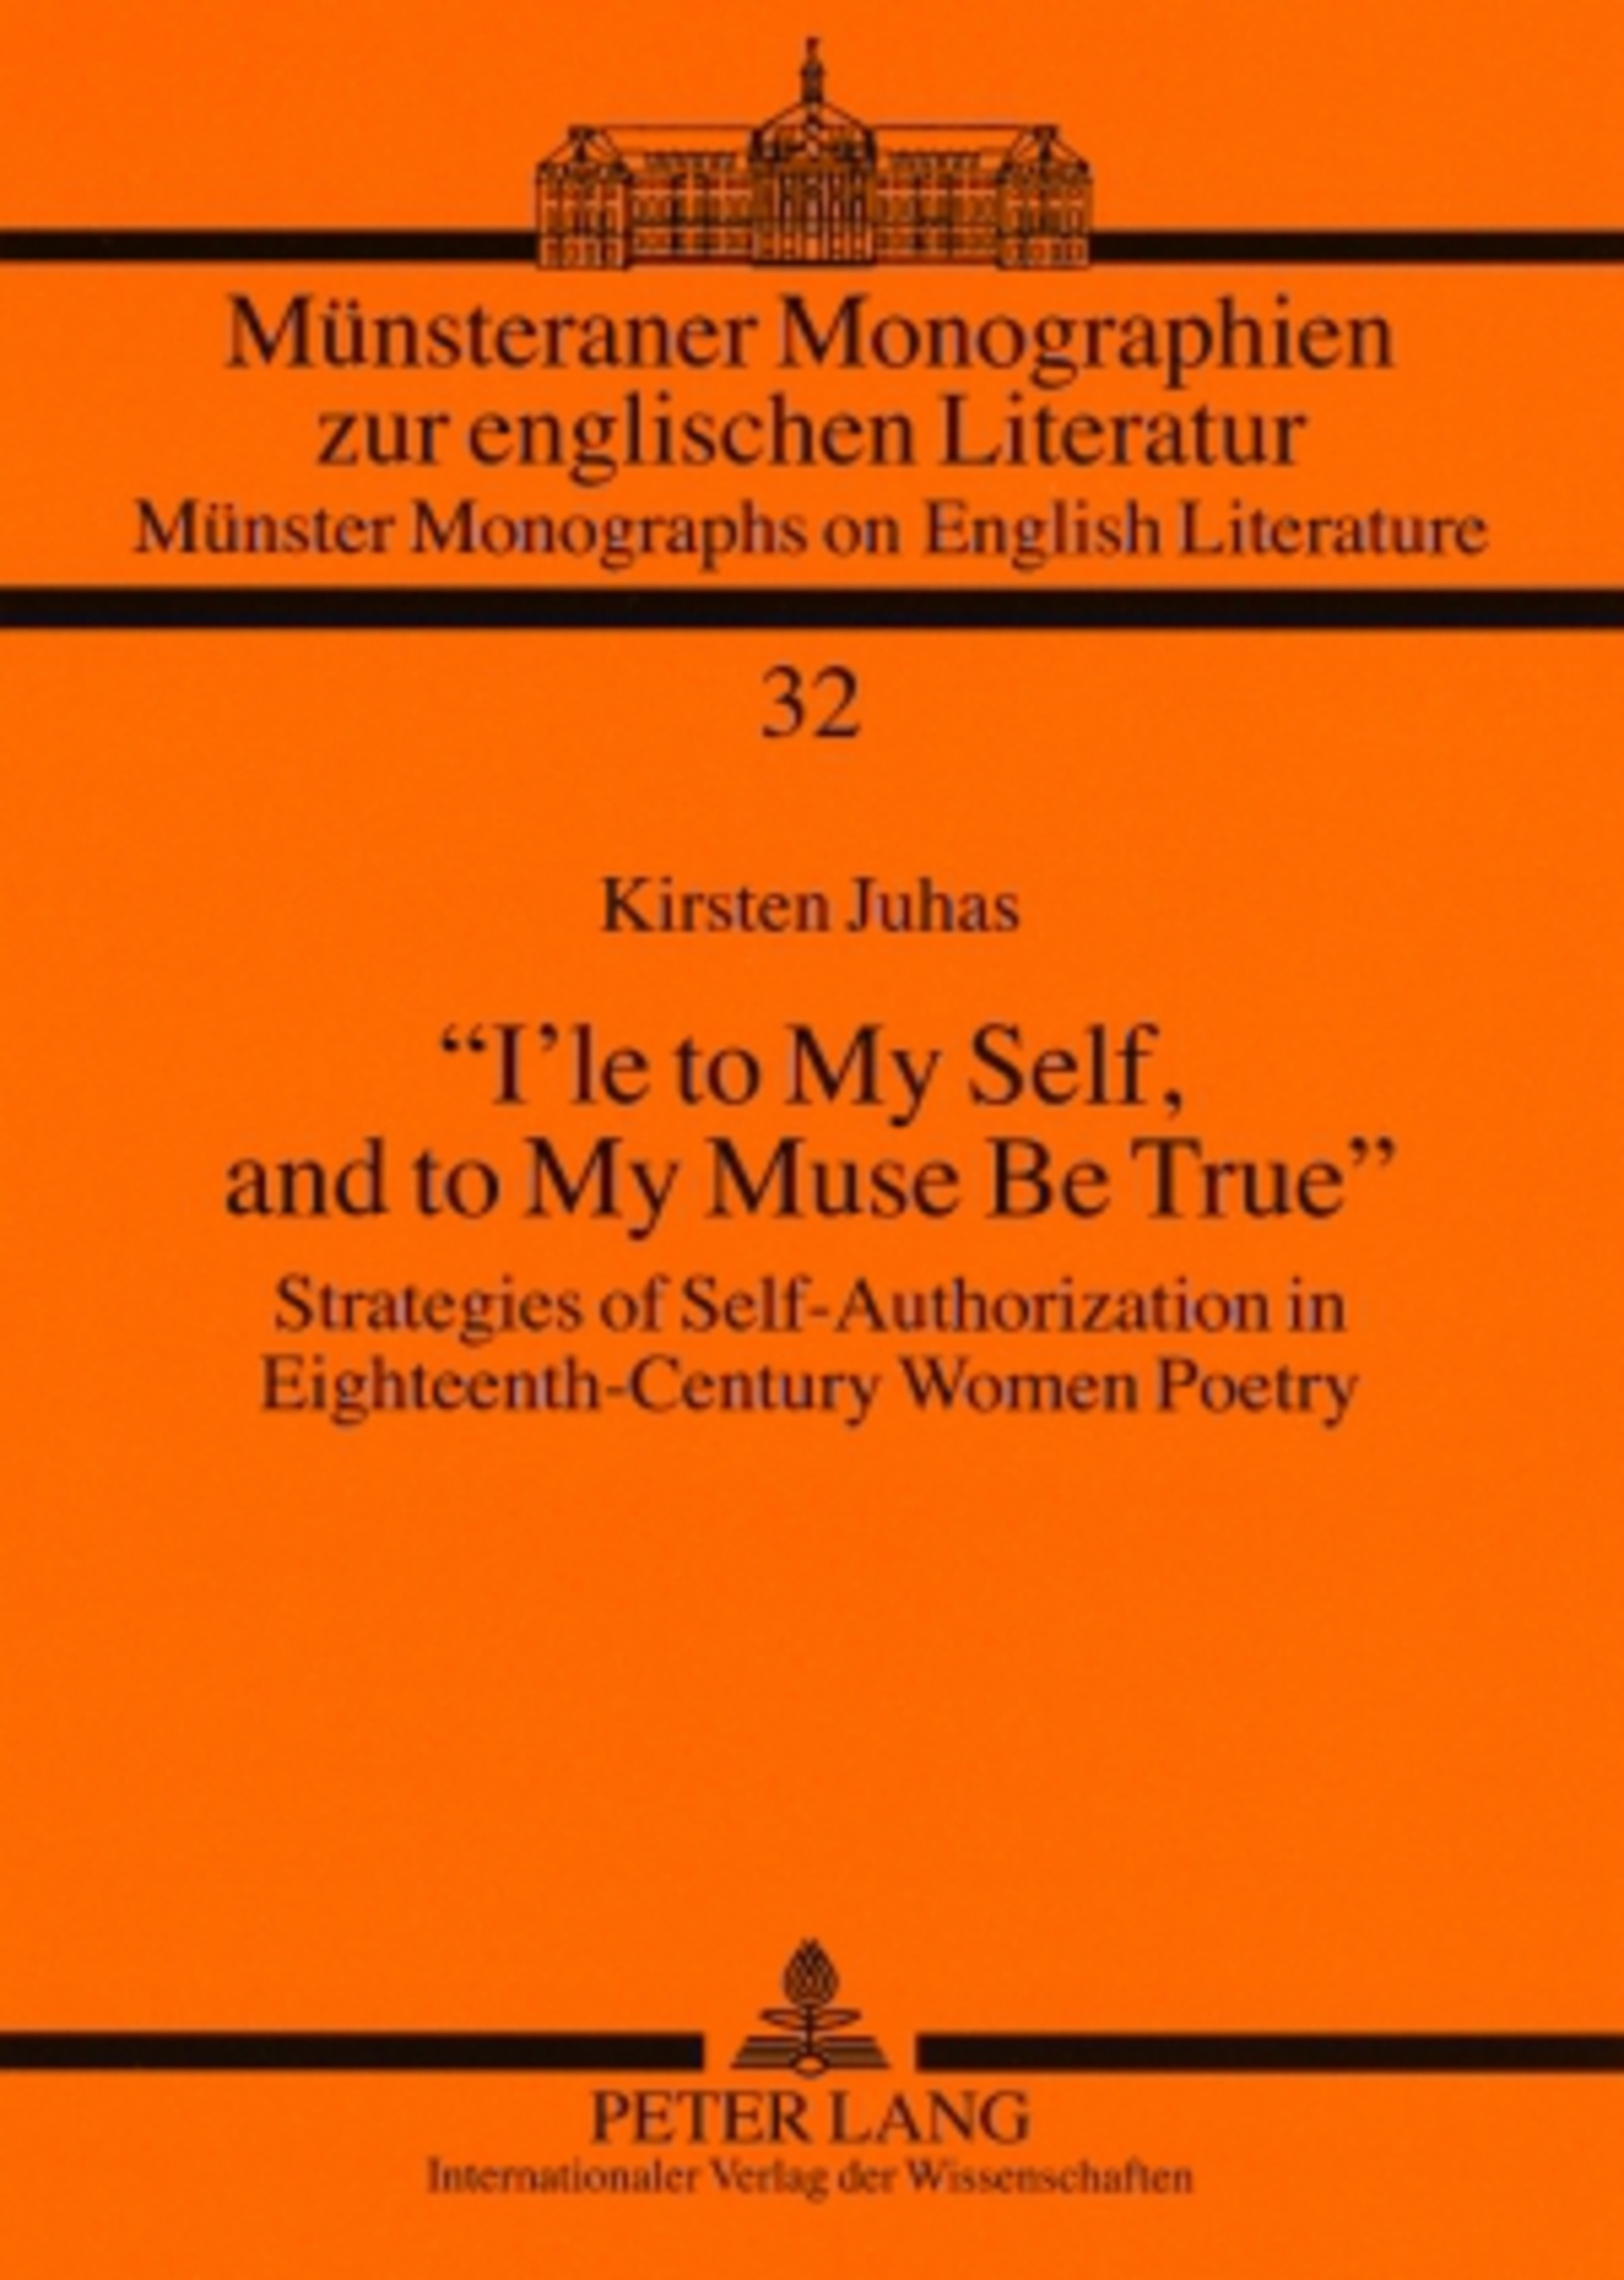 Title: «I'le to My Self, and to My Muse Be True»